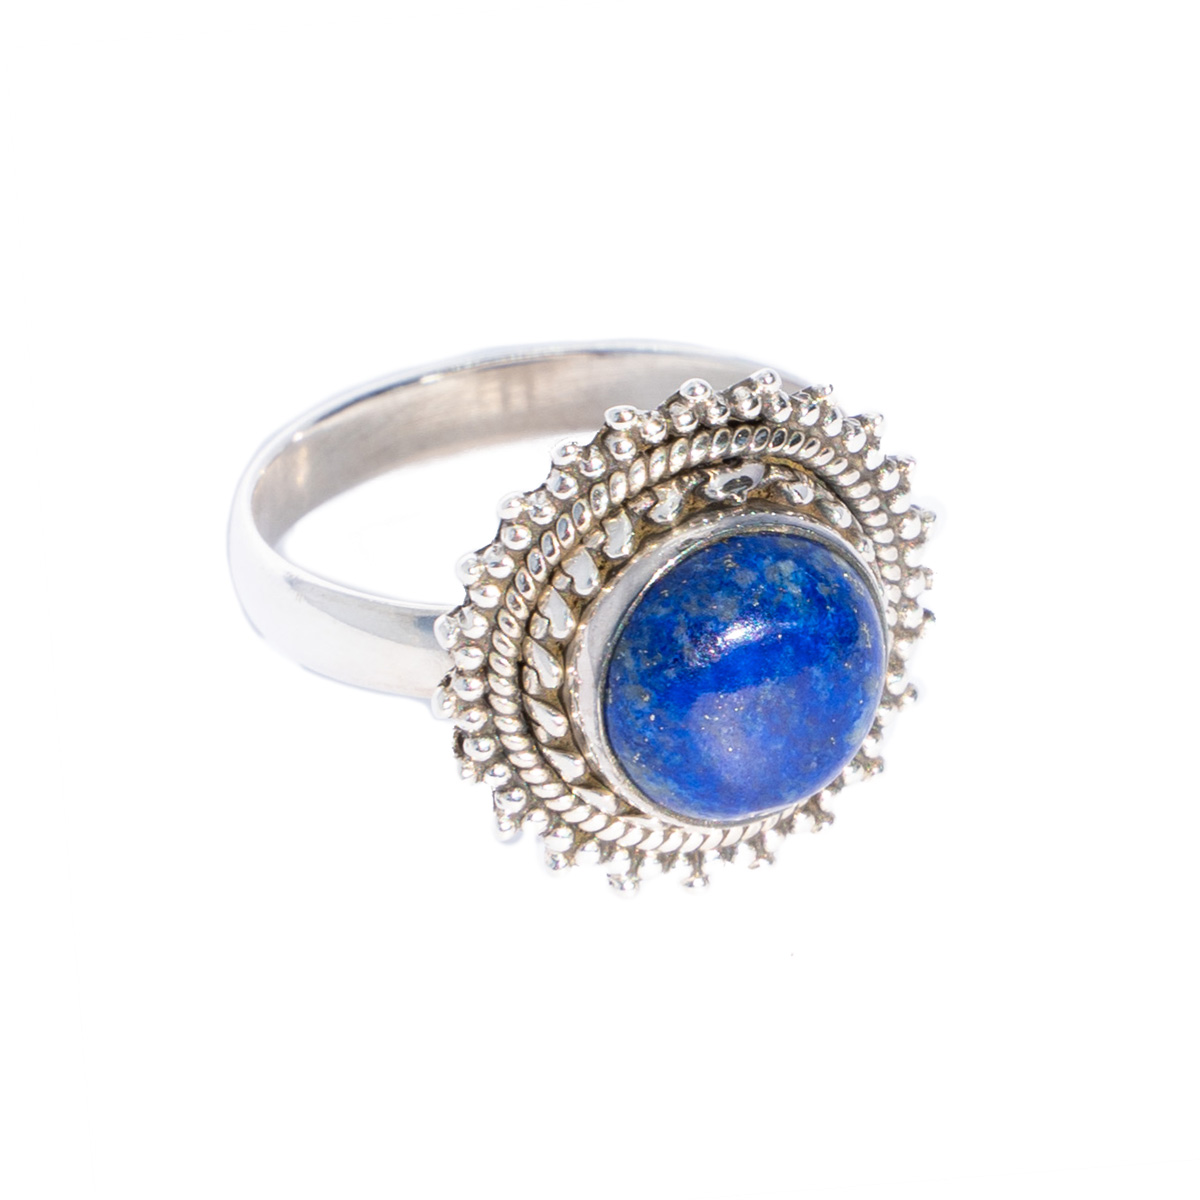 Sri Avinash Infused™ Lapis Lazuli Sundance Ring in Sterling Silver - Divine Blessings Infusion